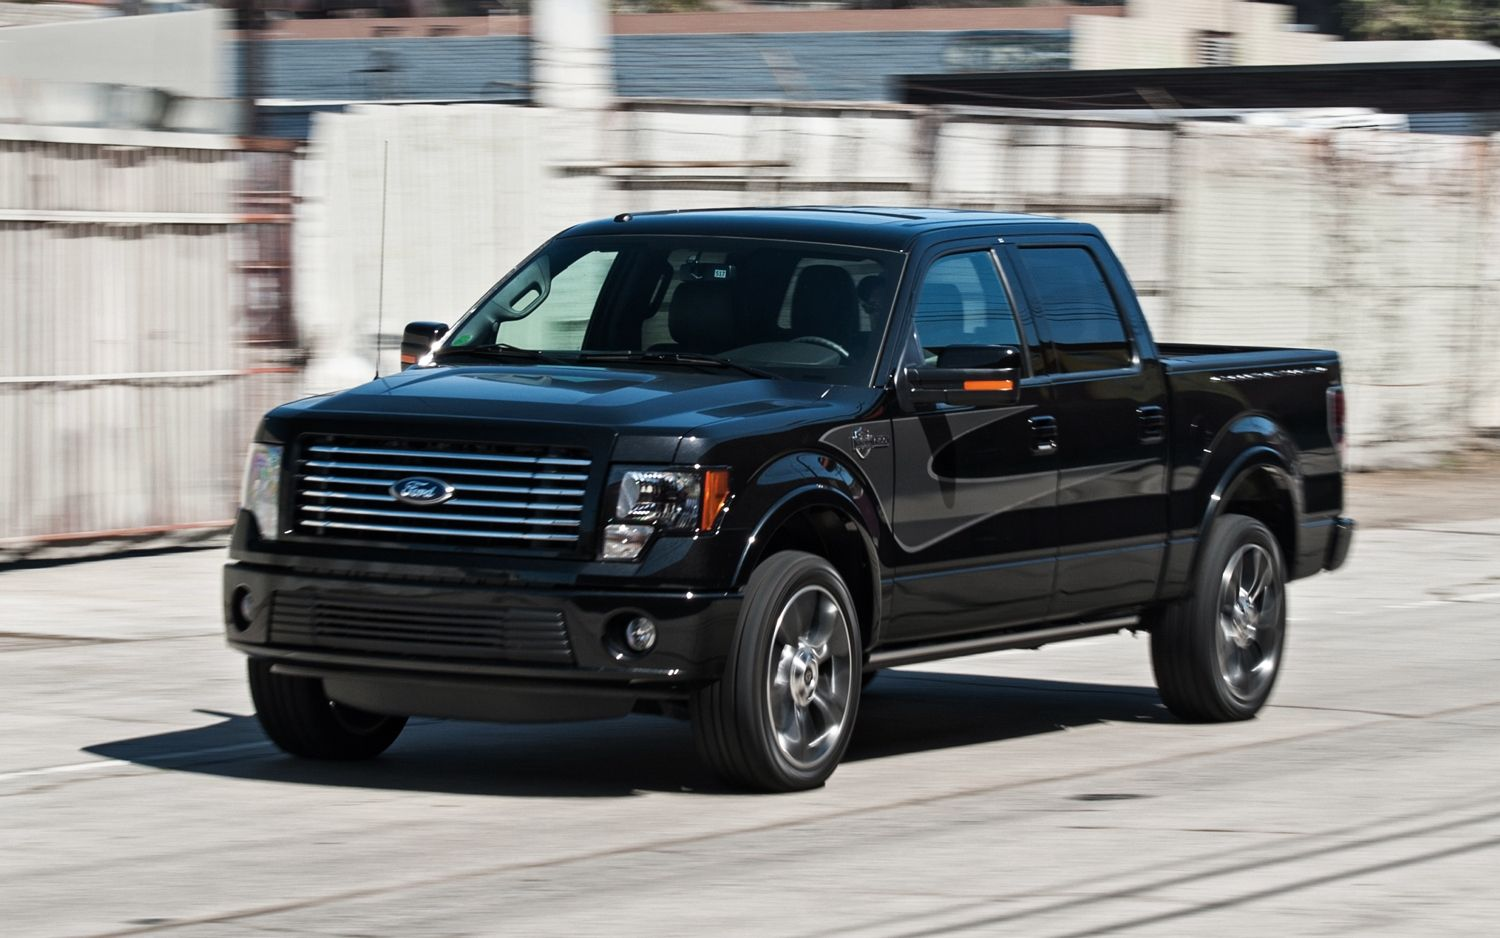 2012 Ford F 150 Specs Onegrandcars 2012 Ford F150 Specs 1500 X 938 Ford F150 Lifted Toyota Cars Ford F150